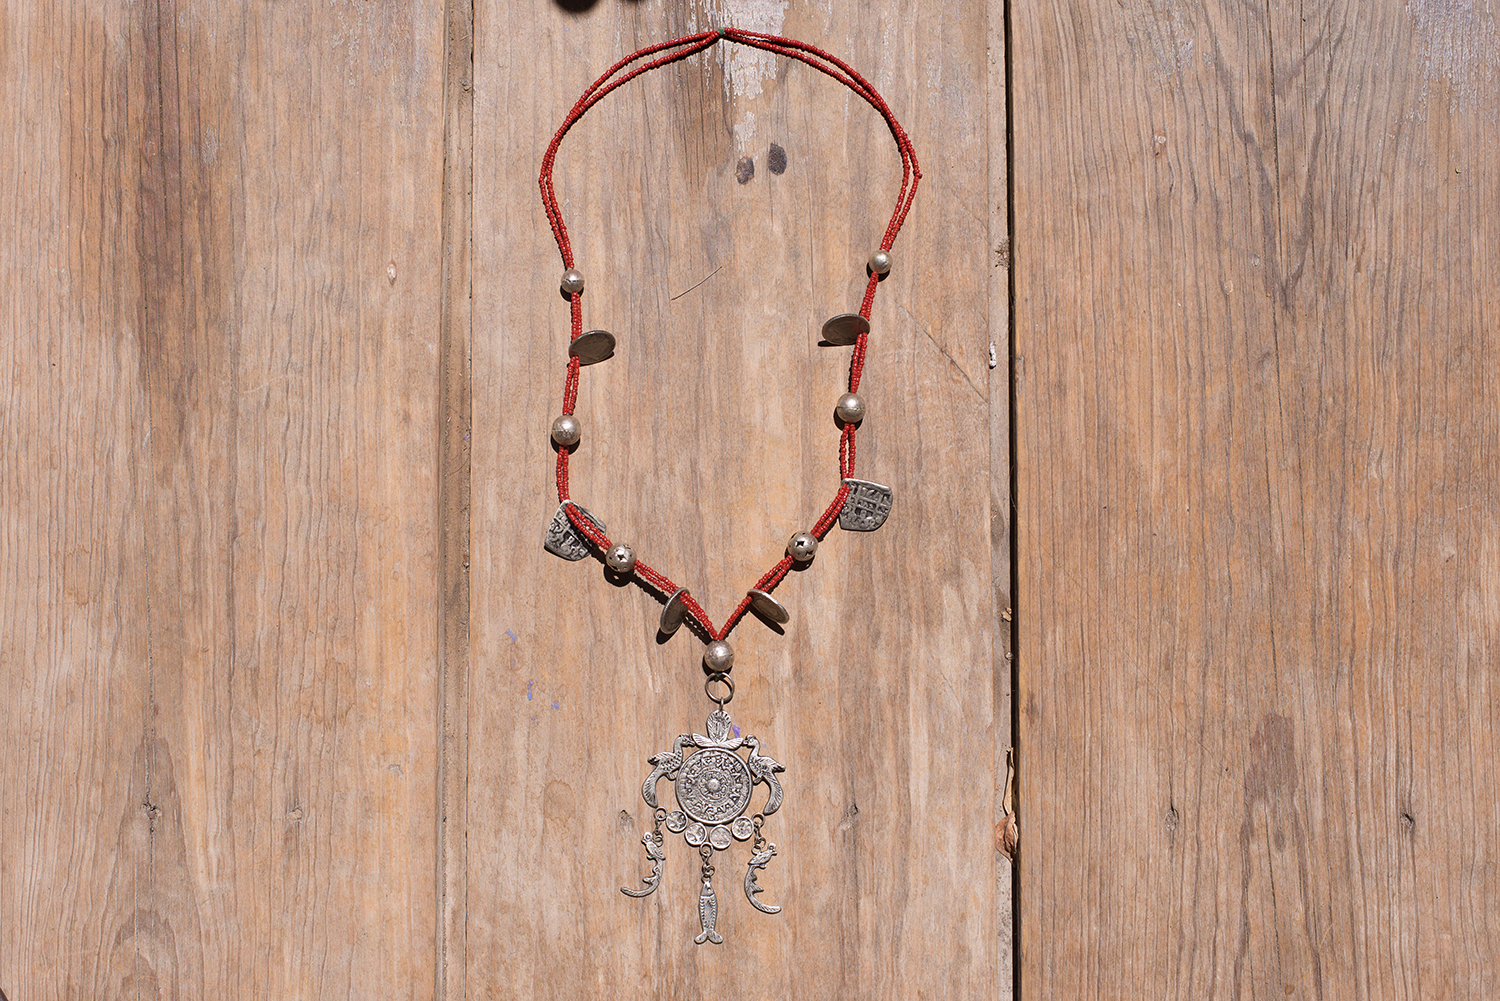 GUATEMALAN MEDALLION NECKLACE   STATUS: AVAILABLE TO ORDER